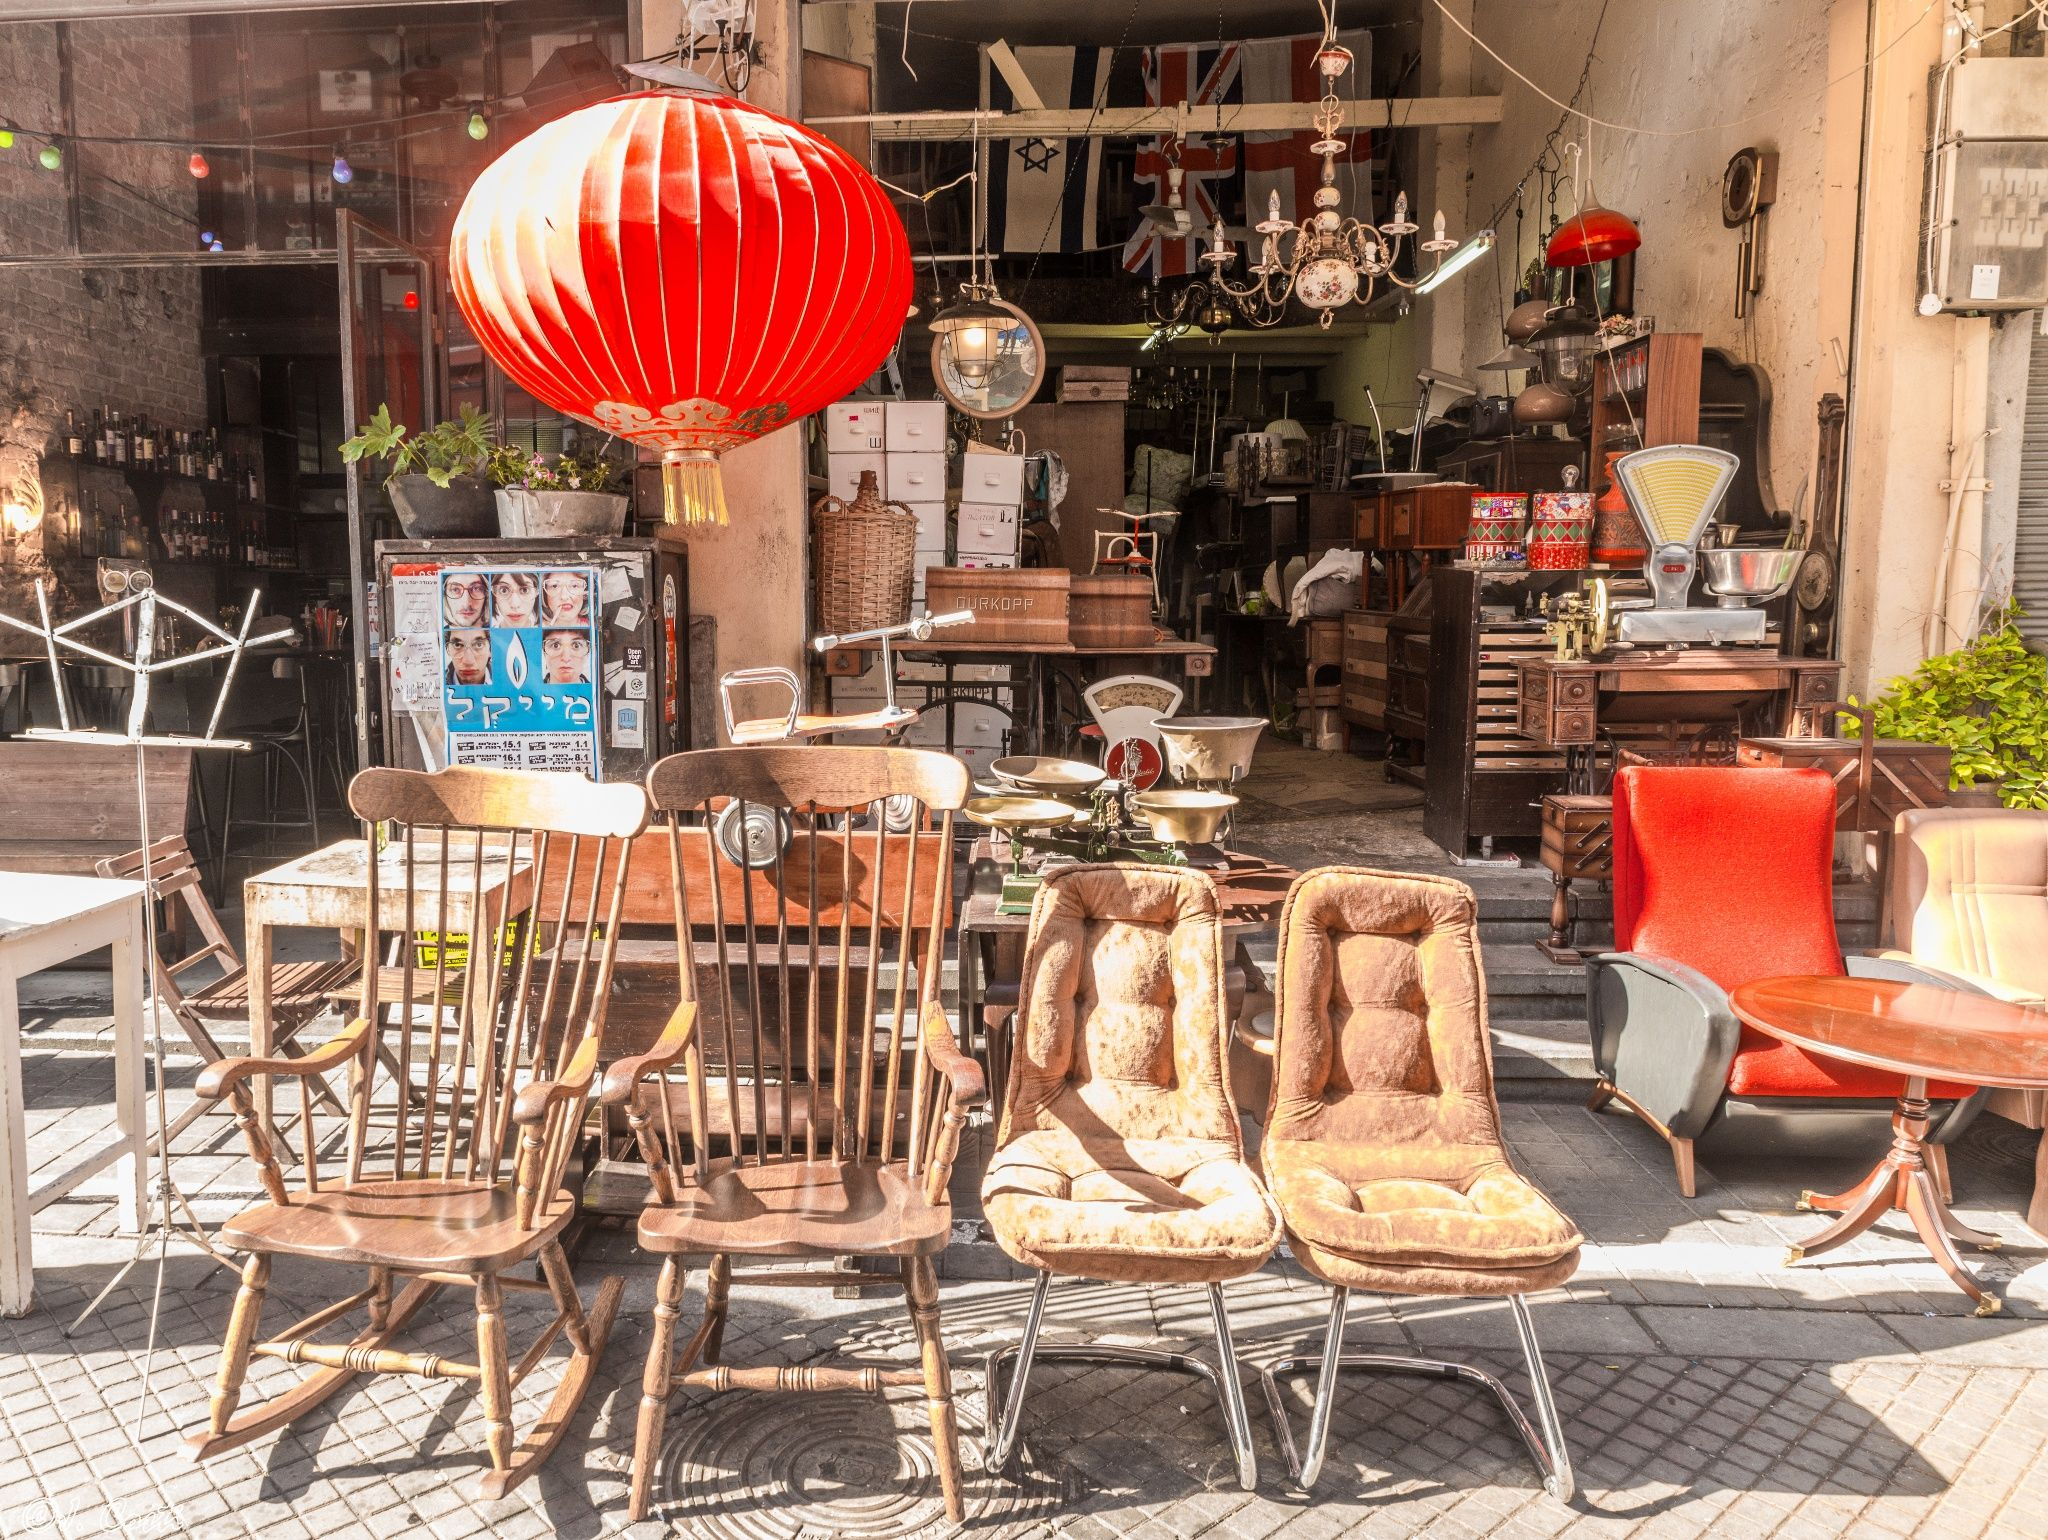 Shop in the Flee Market - Jaffa. by Jacky COSTI©- Photography on 500px